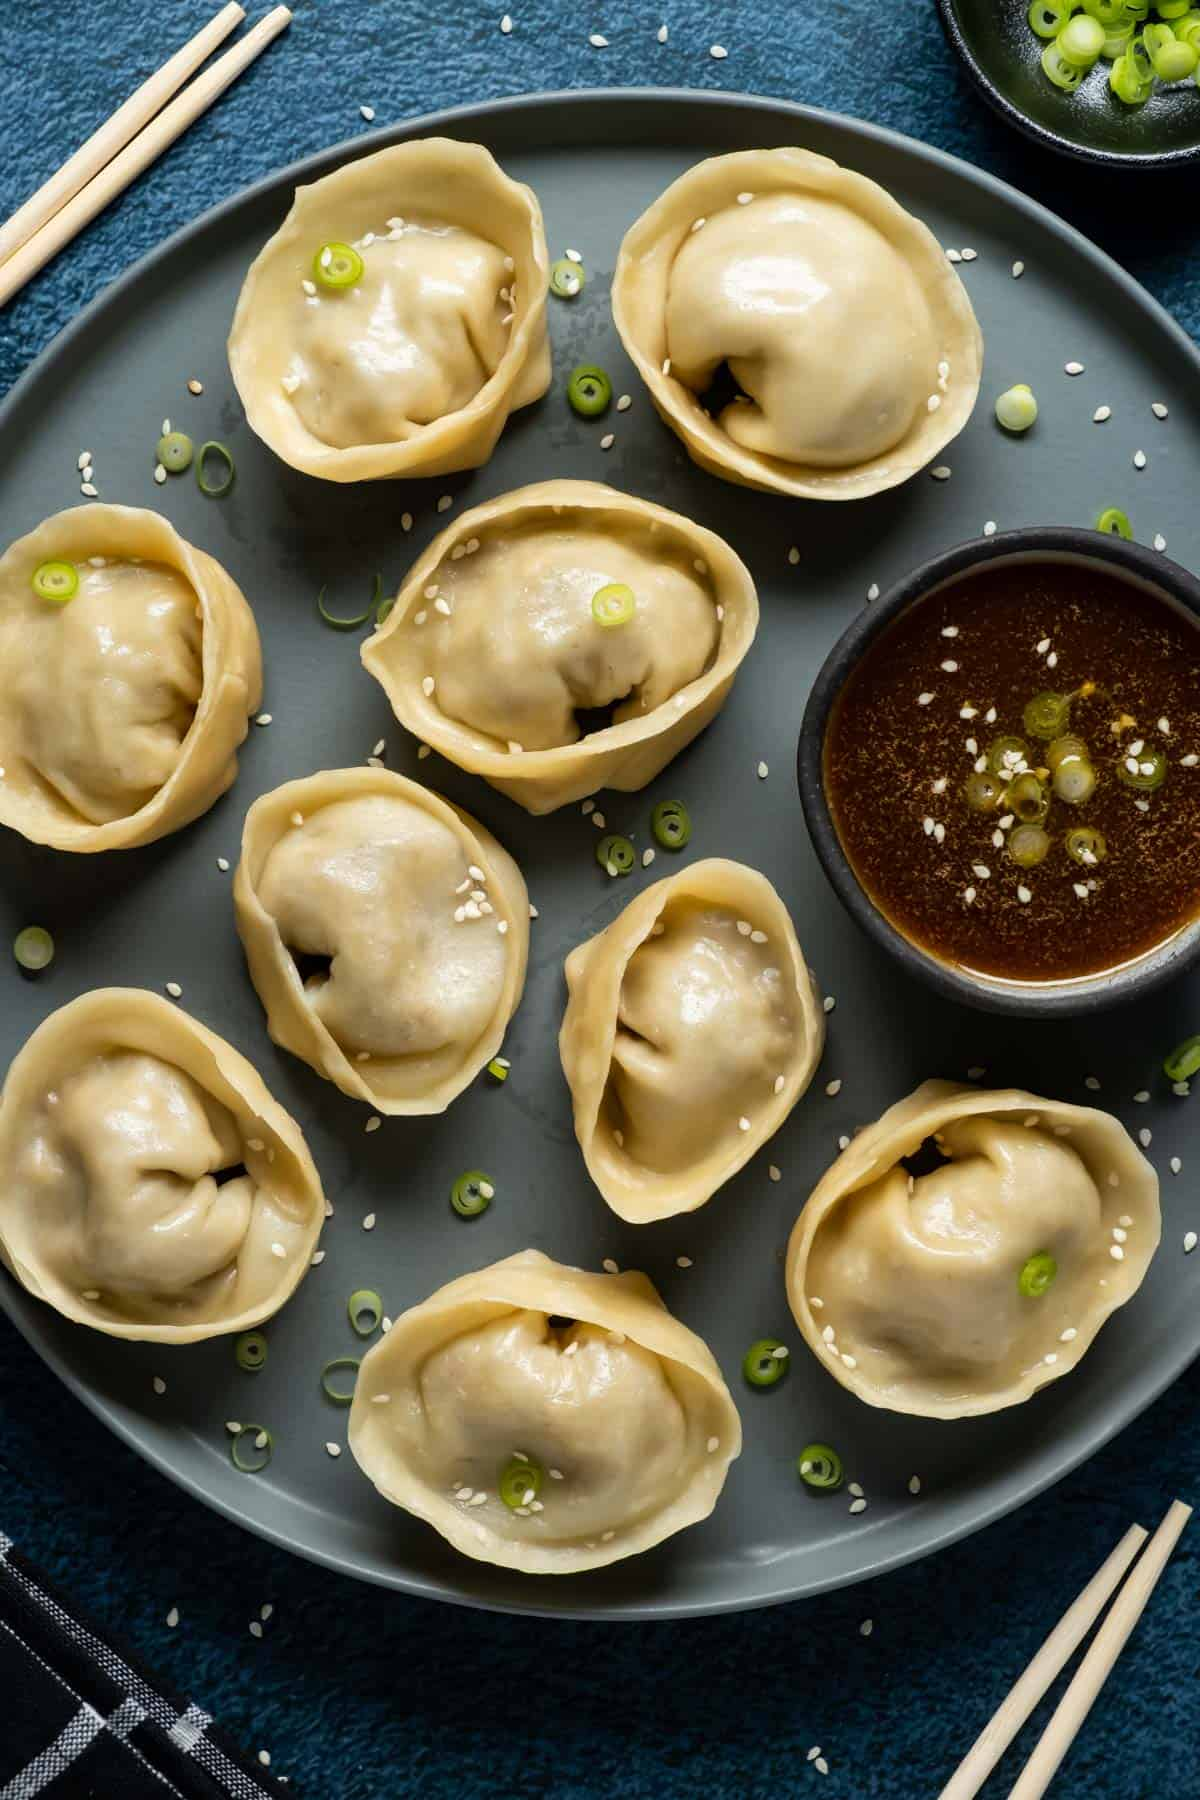 Dumplings topped with chopped green onions on a plate with dipping sauce.